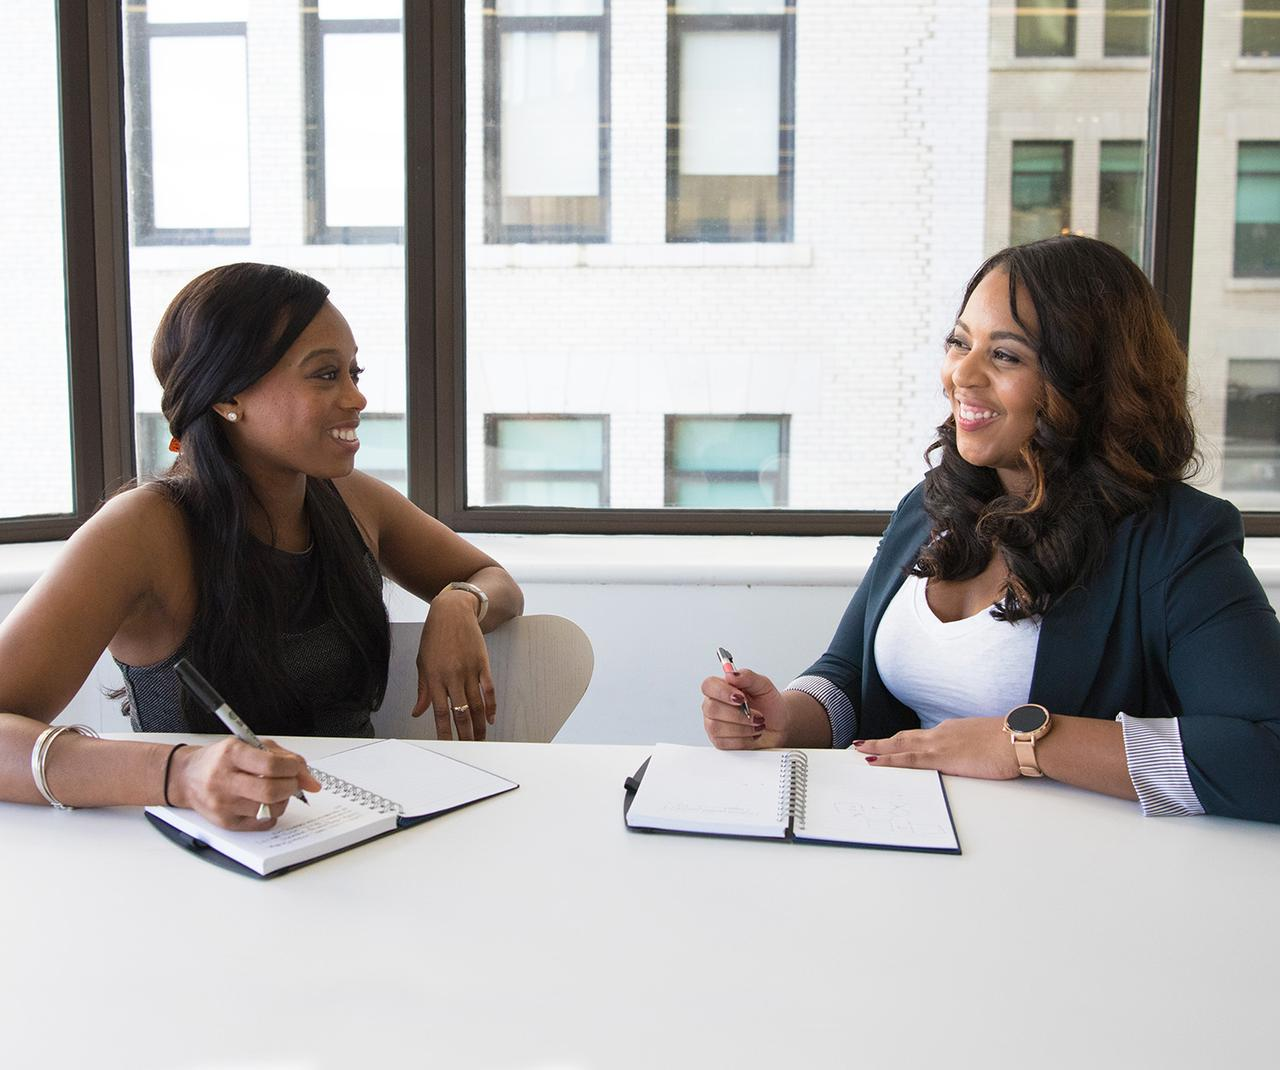 Learn all of the tips and insights you need to build your success and advance your career.